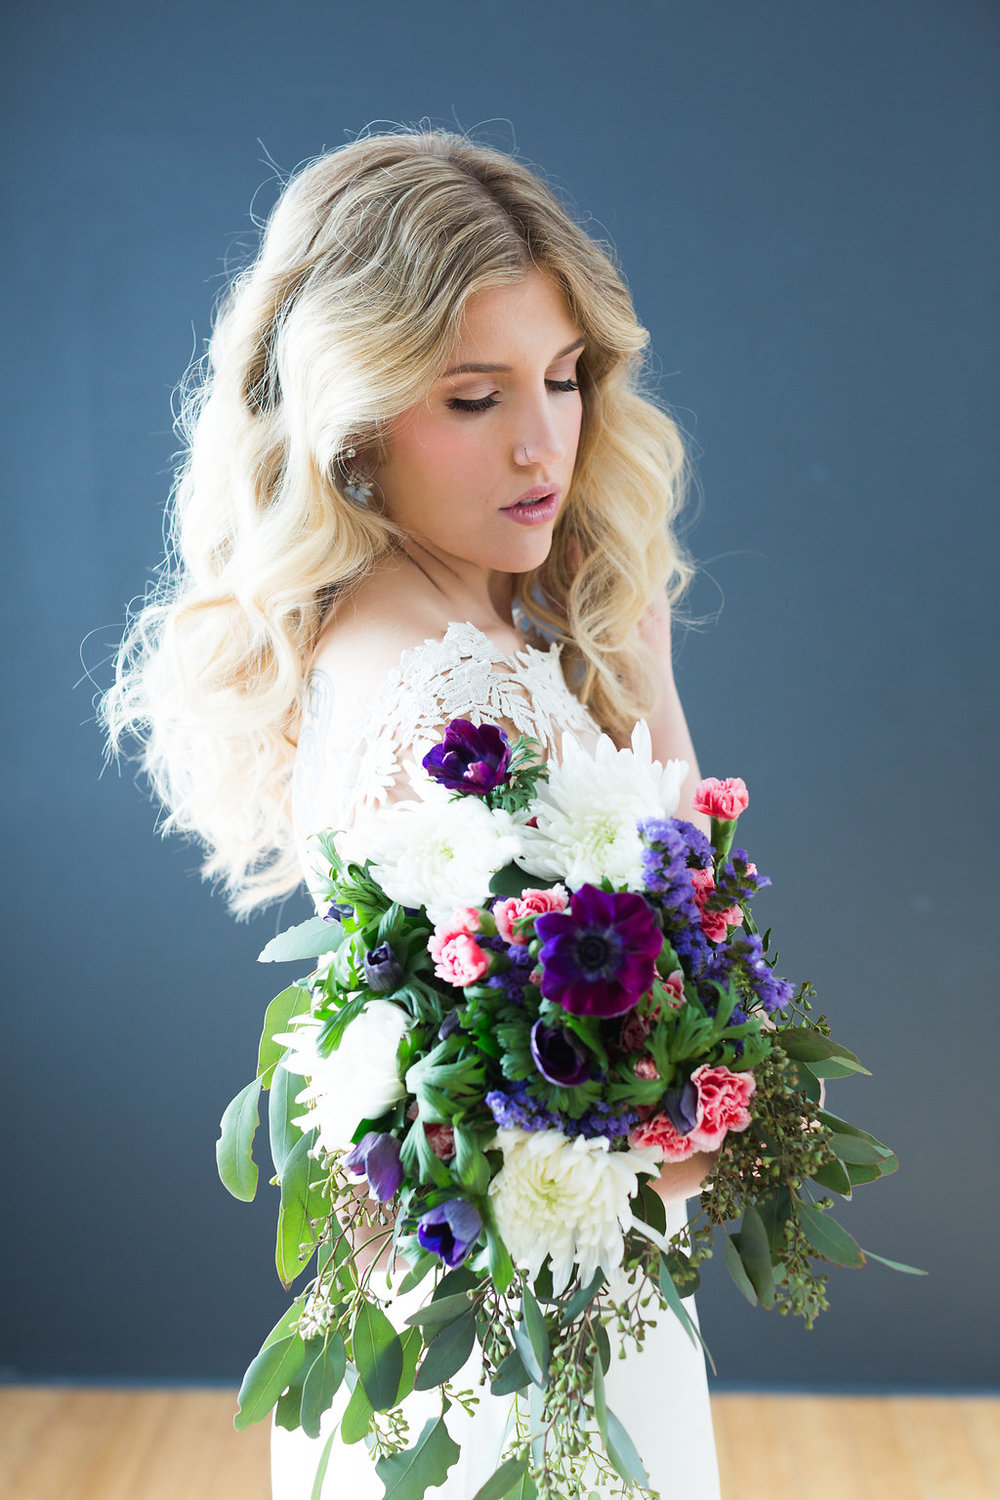 Courtney-Ross-Photo-Denver-Bridal-Editorial-Photography-0159.jpg